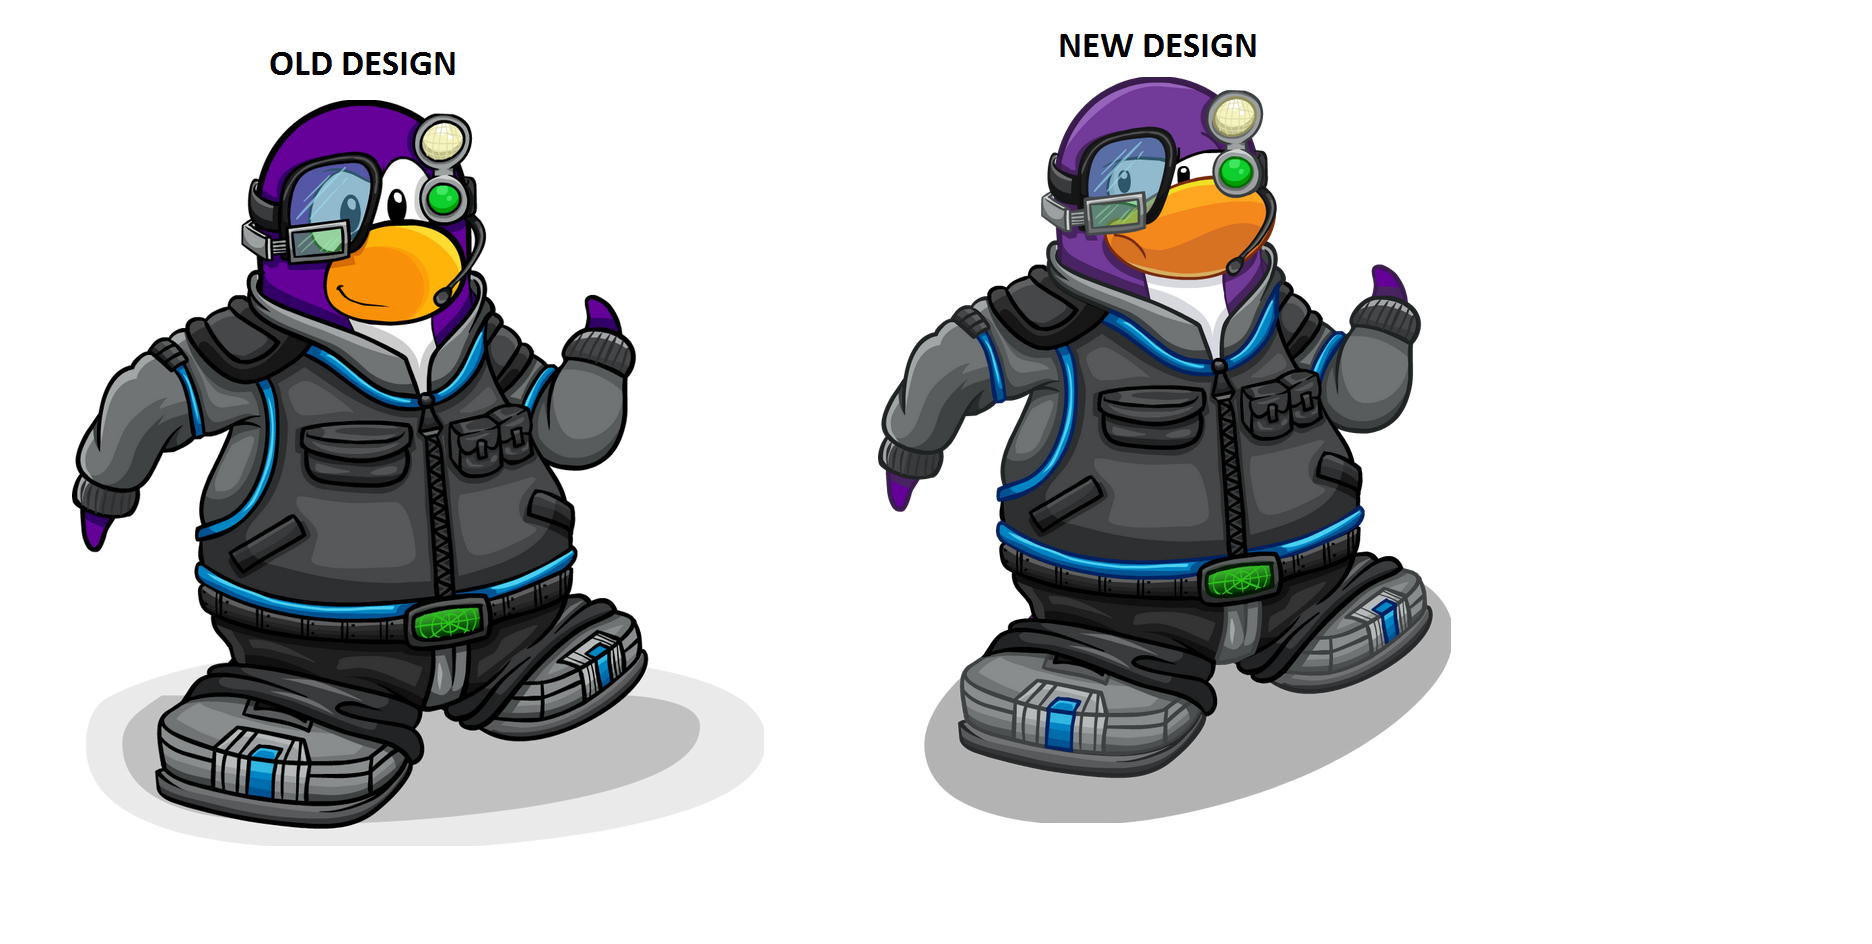 image penguin design png club penguin wiki fandom powered by